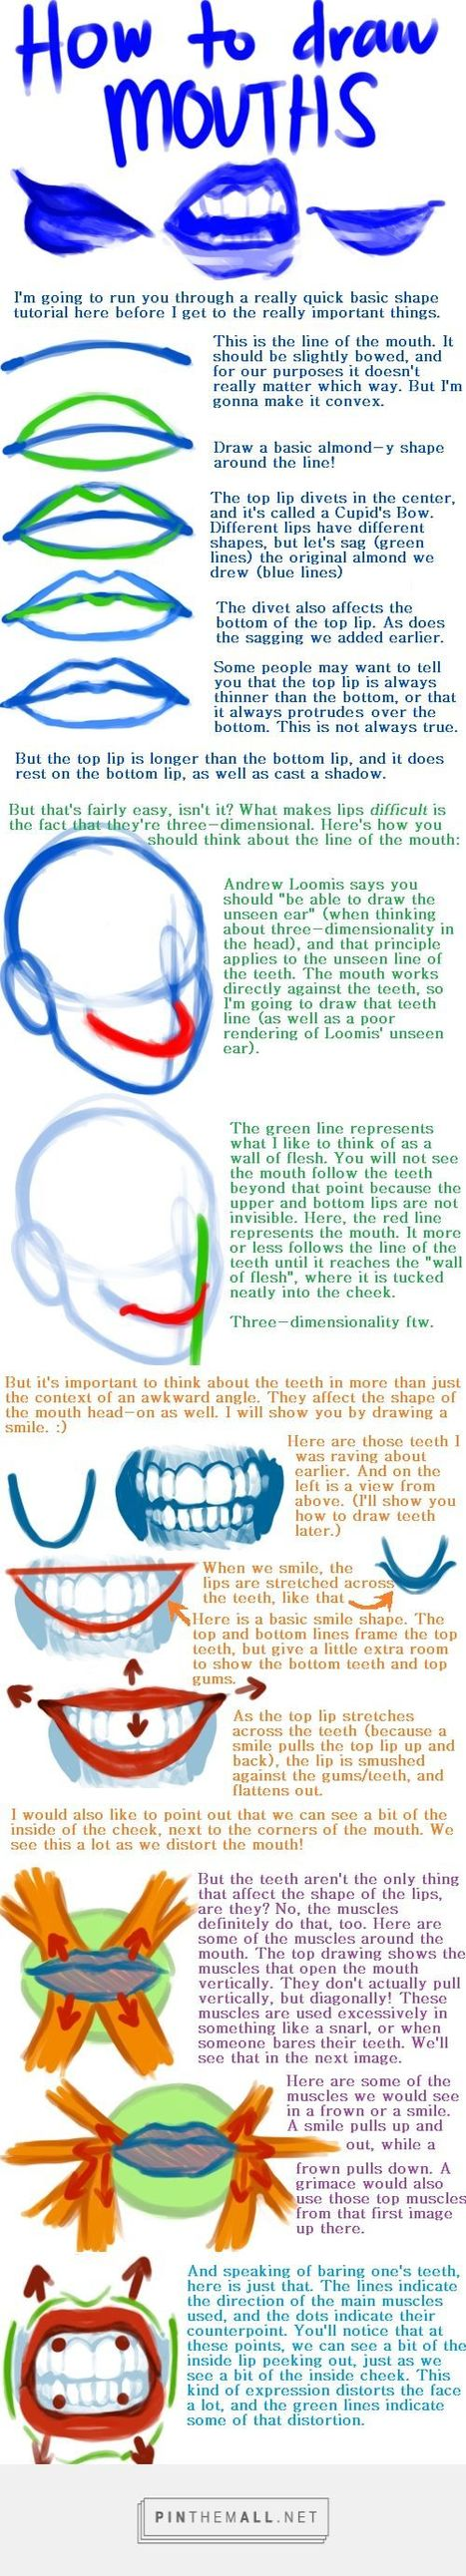 Mouth Drawing Reference Guide | Circolo d'Arti | Scoop.it